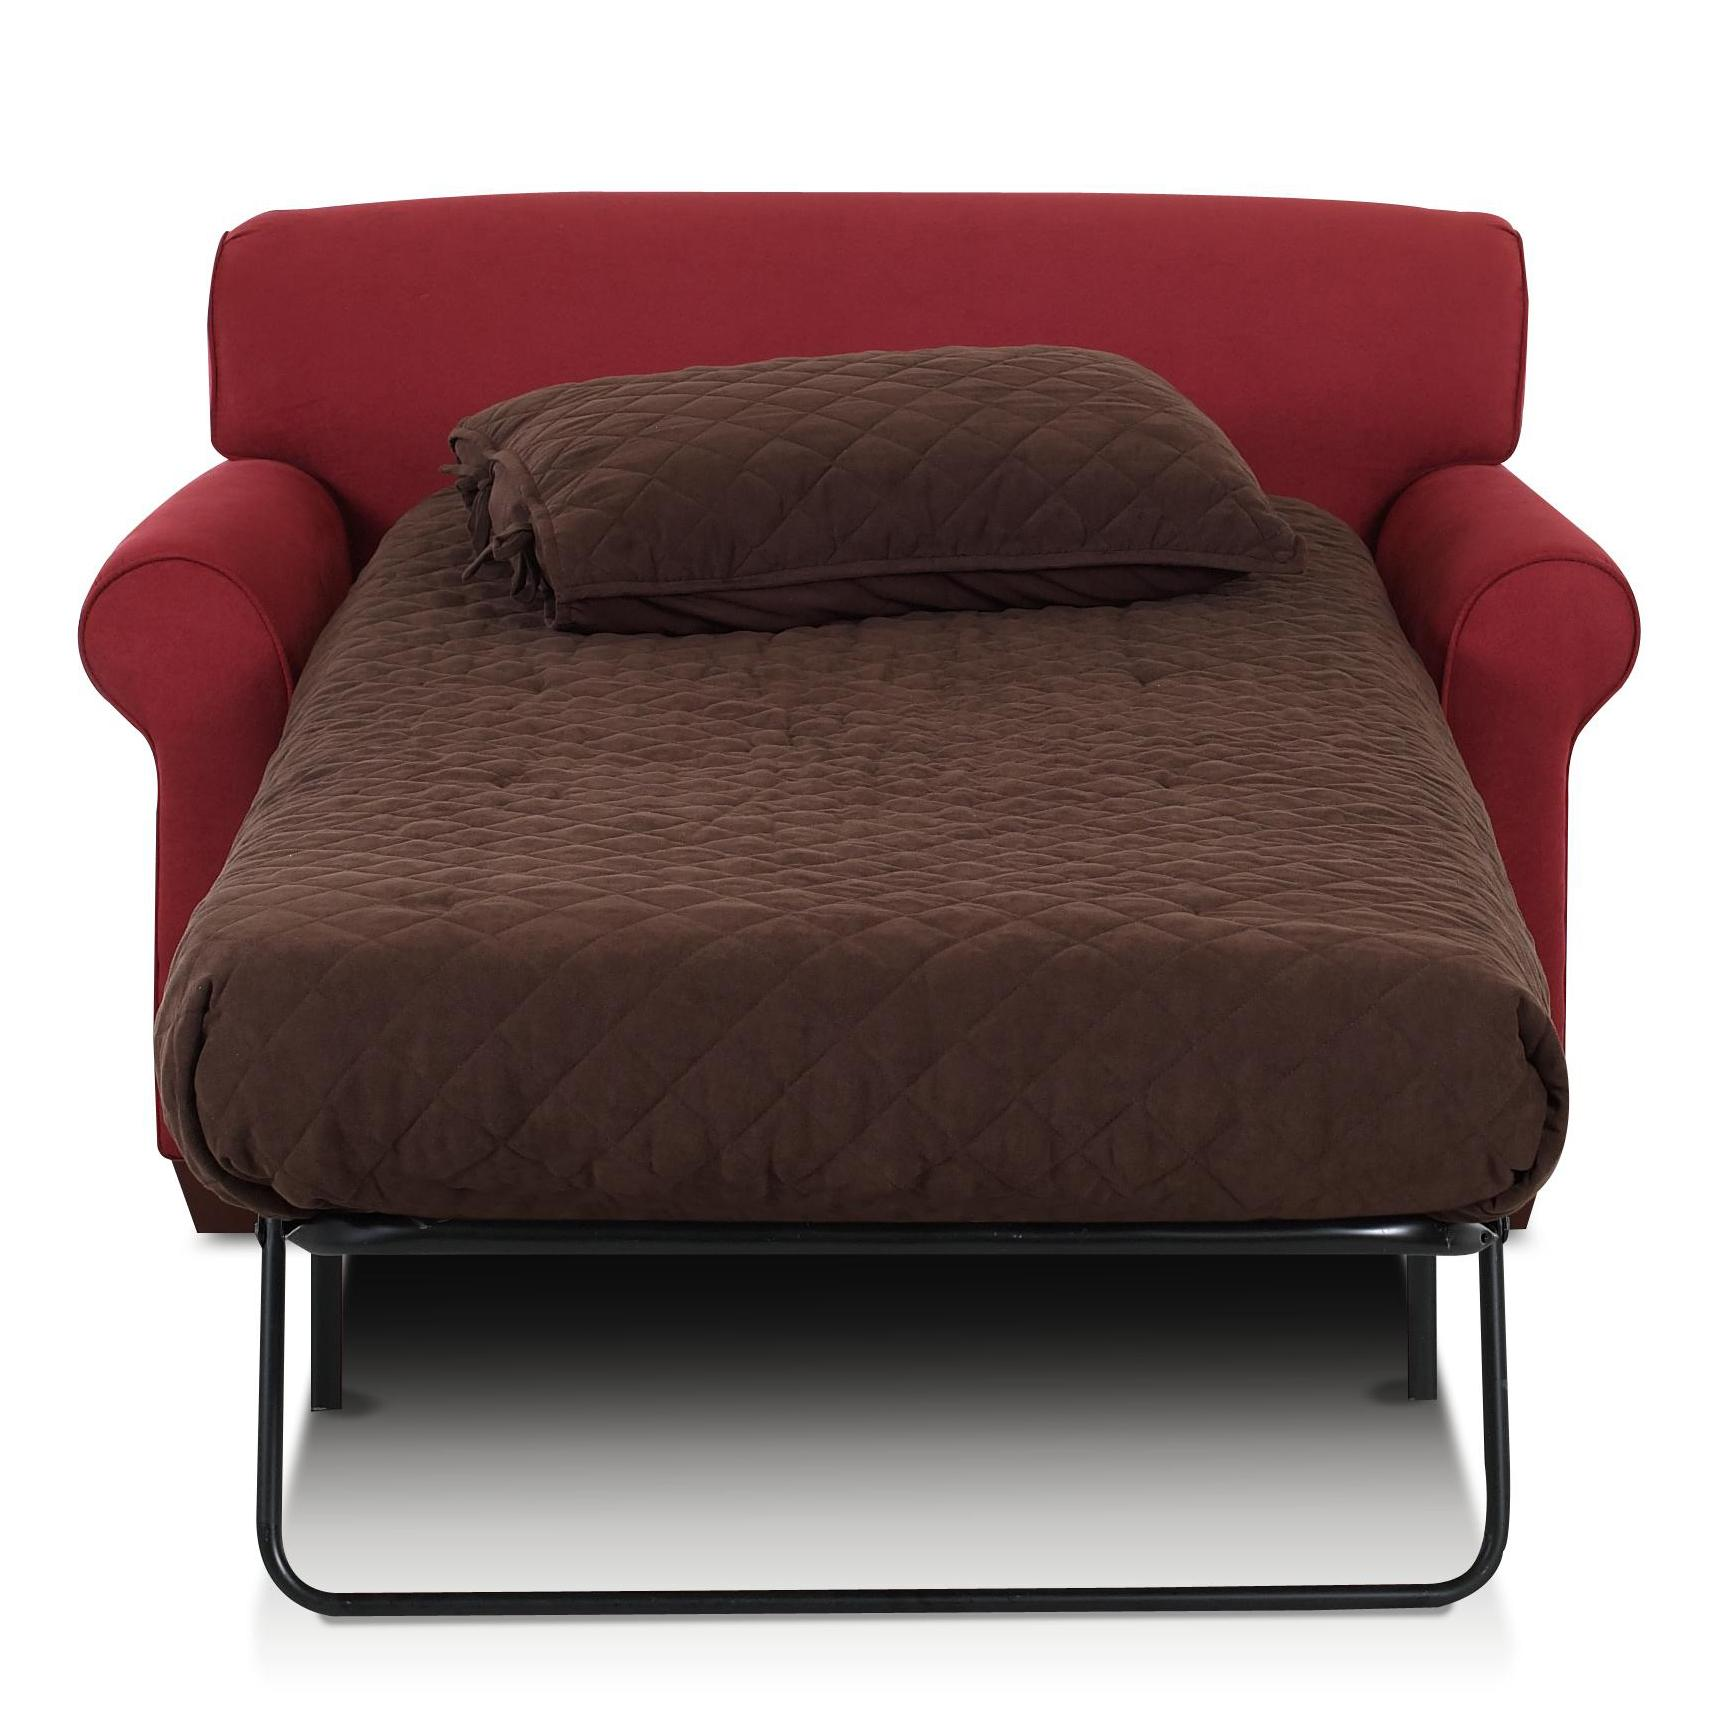 twin chair sleeper sofa european touch pedicure chairs for sale klaussner mayhew with accent pillows johnny janosik innerspring